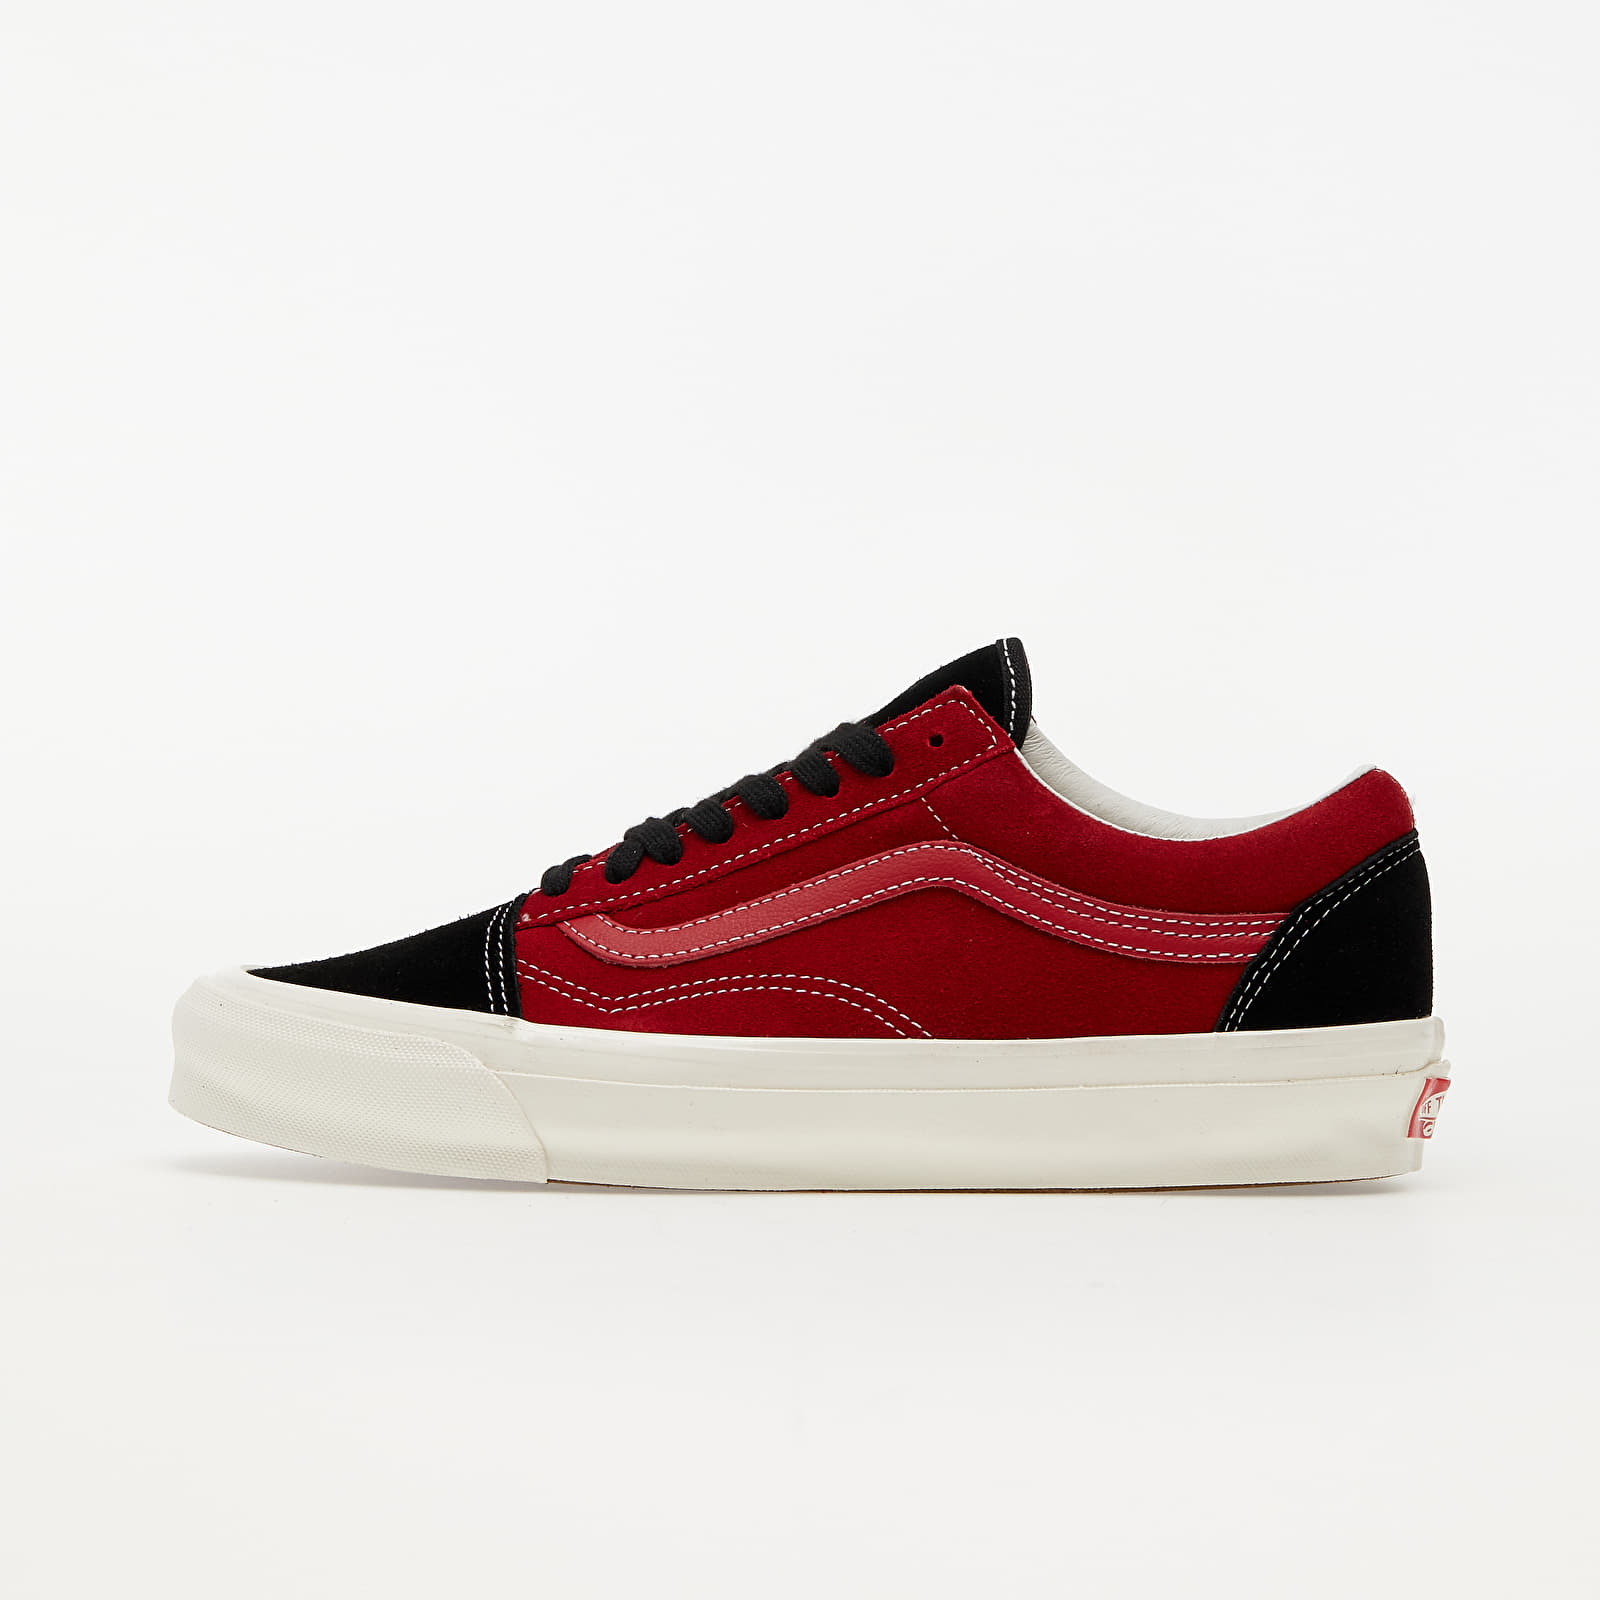 Vans OG Old Skool LX (Suede) Chili Pepper/ Black EUR 38